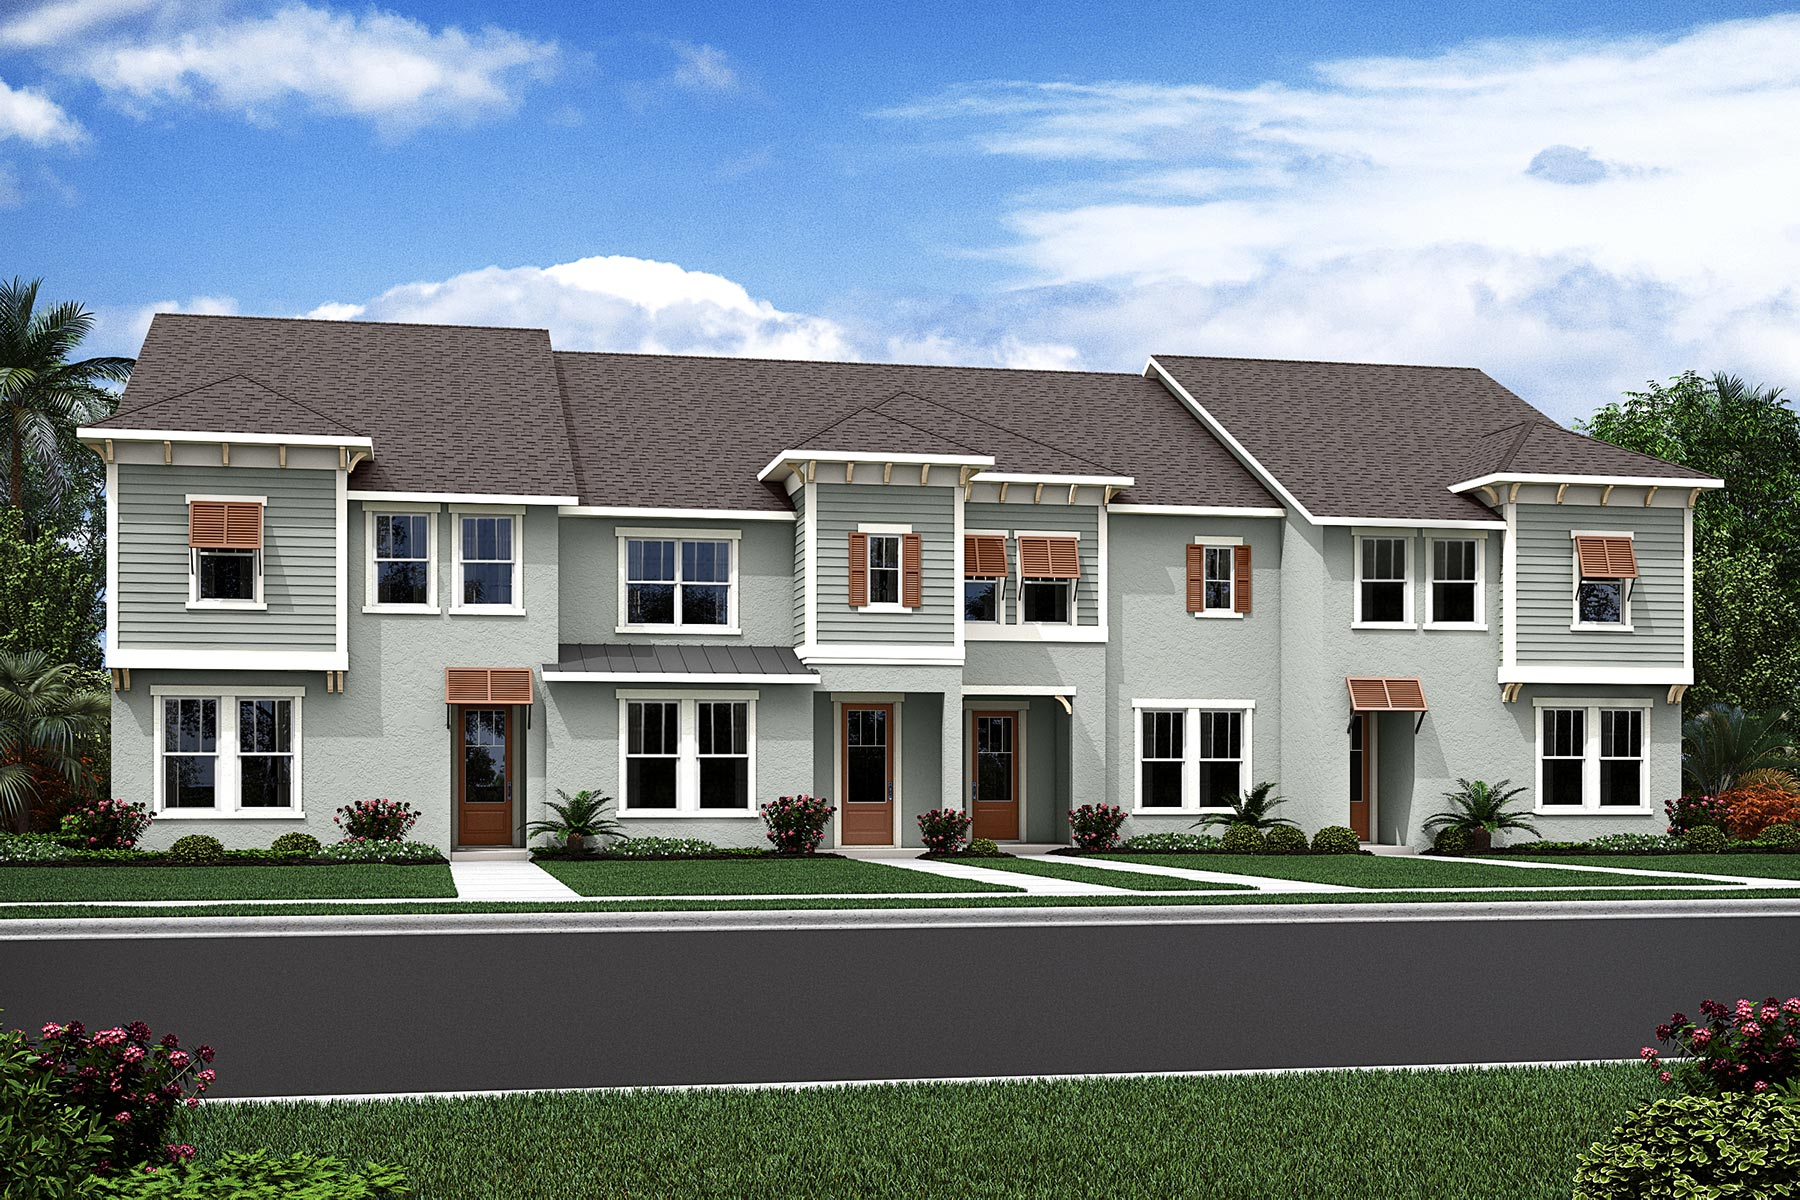 Del Ray Plan TownHomes at Solara Resort in Kissimmee Florida by Mattamy Homes